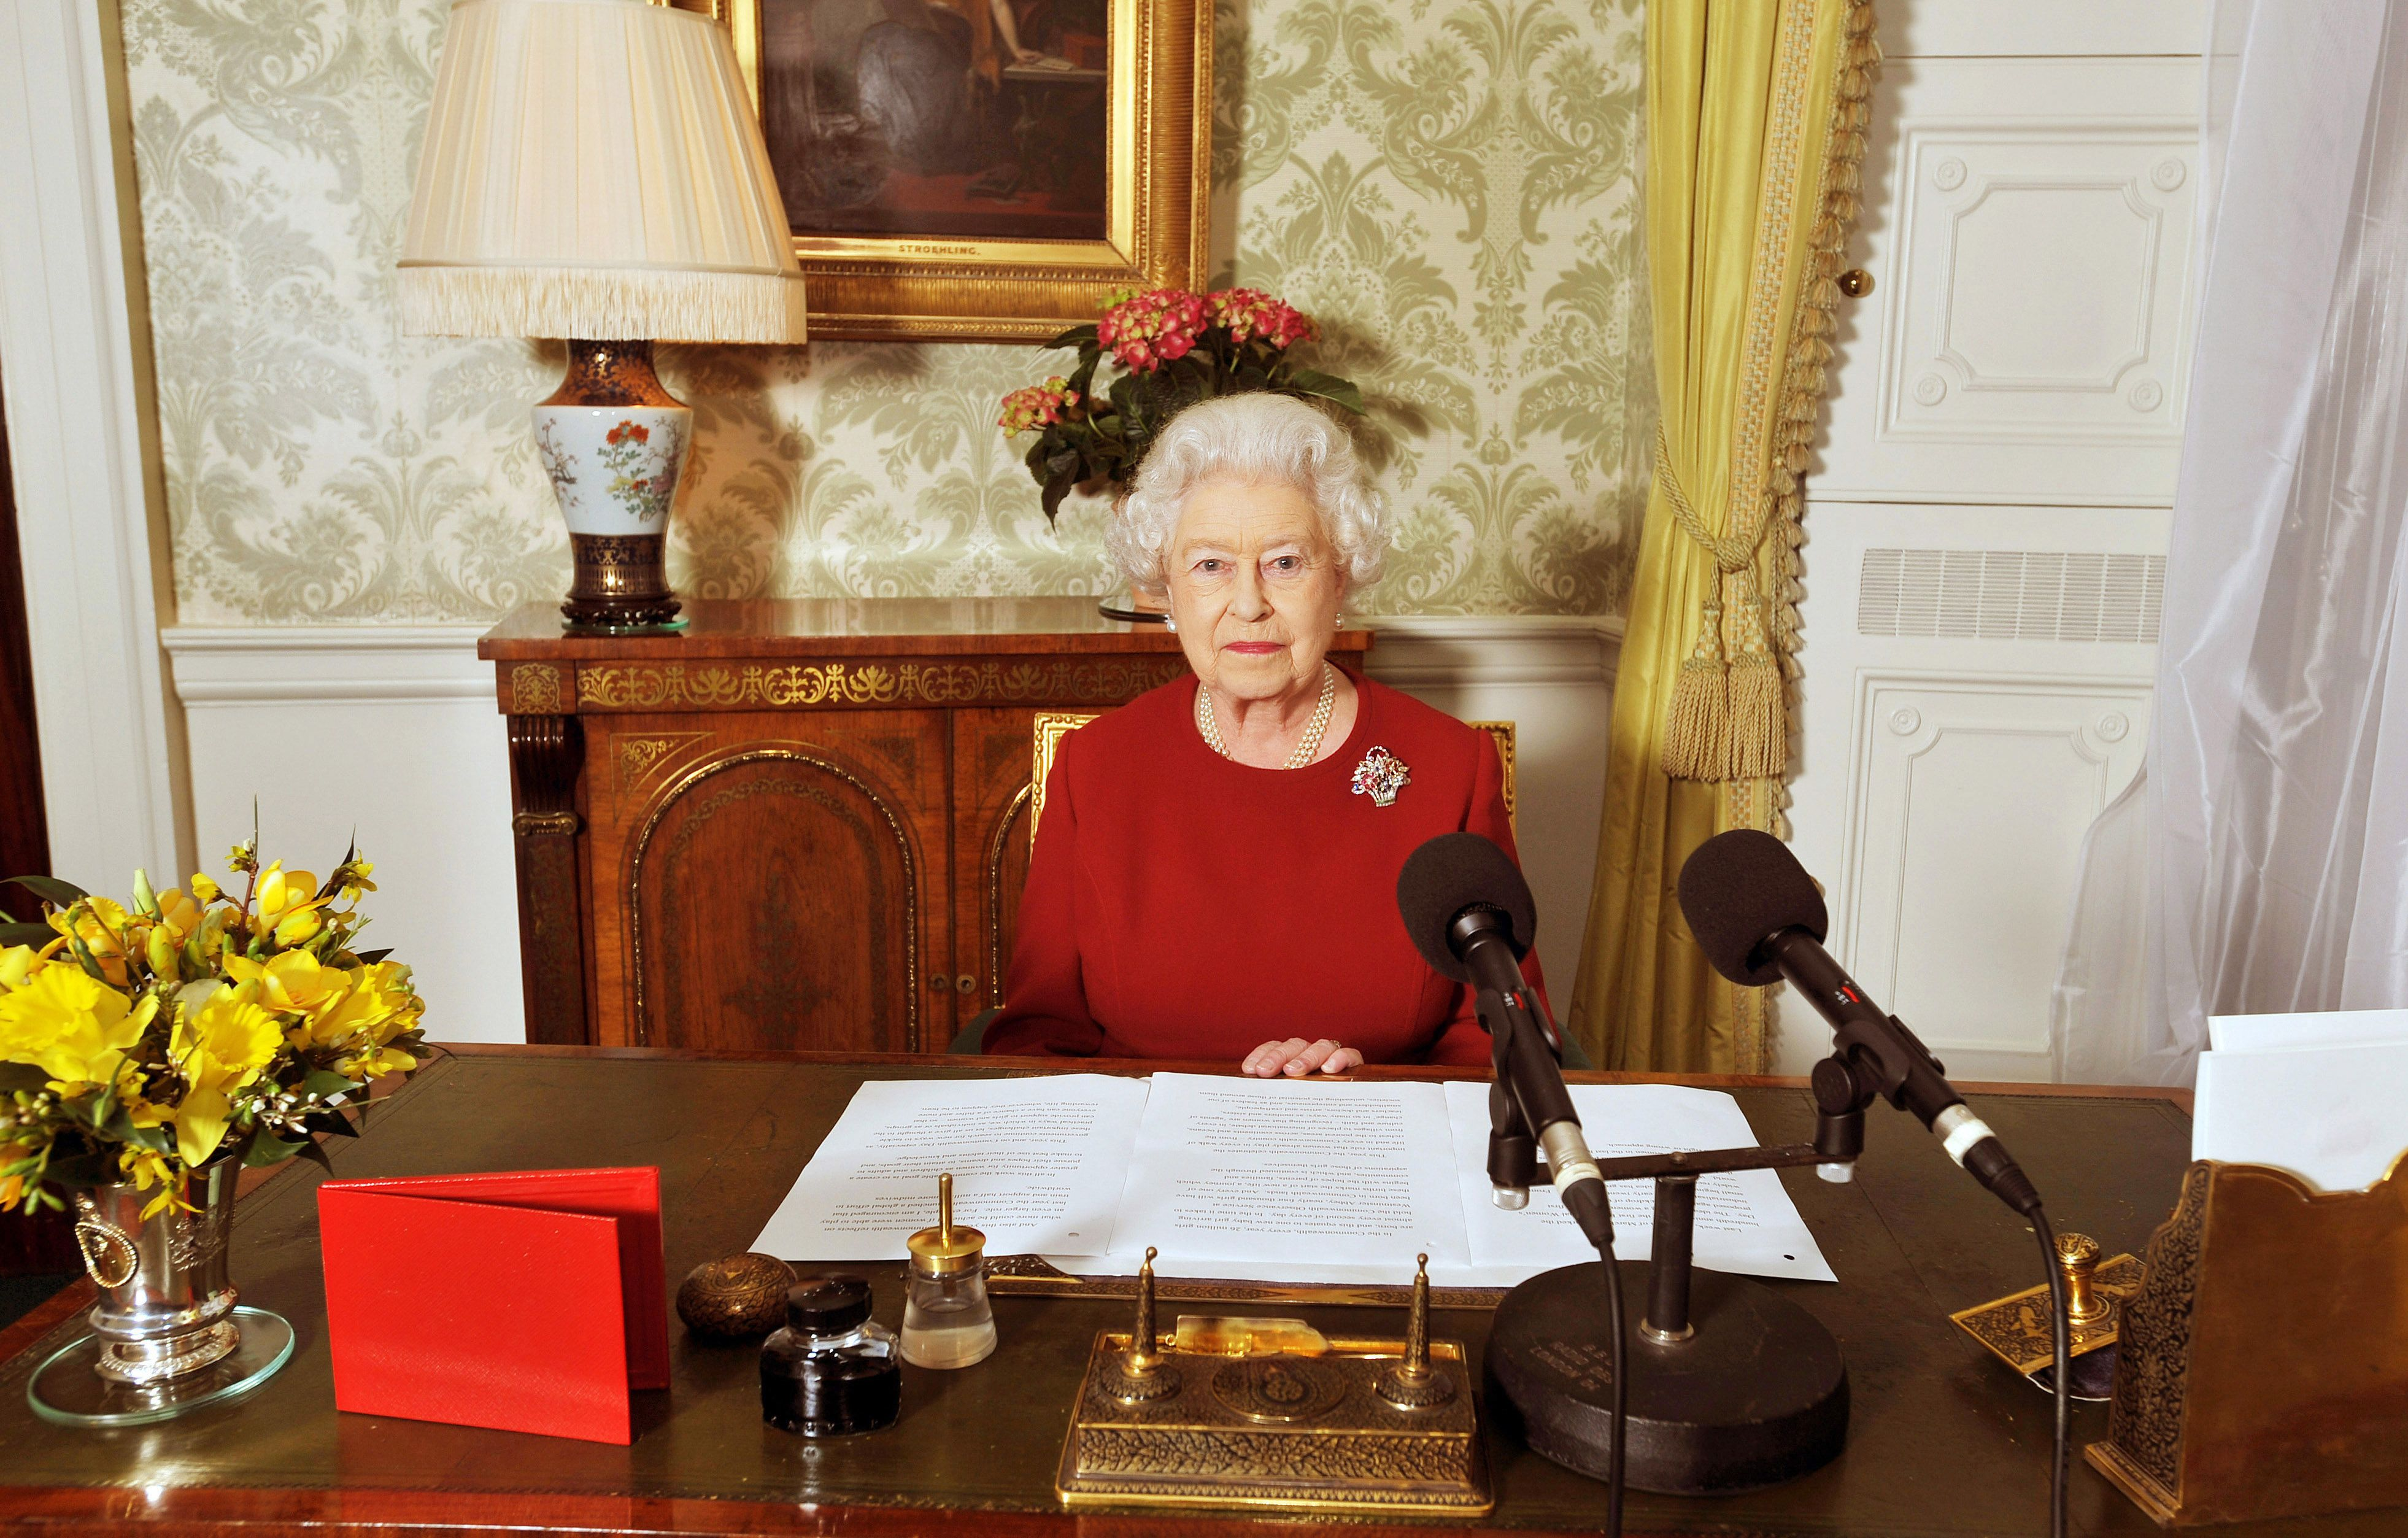 The British Palace Is Hiring a Social Media Manager